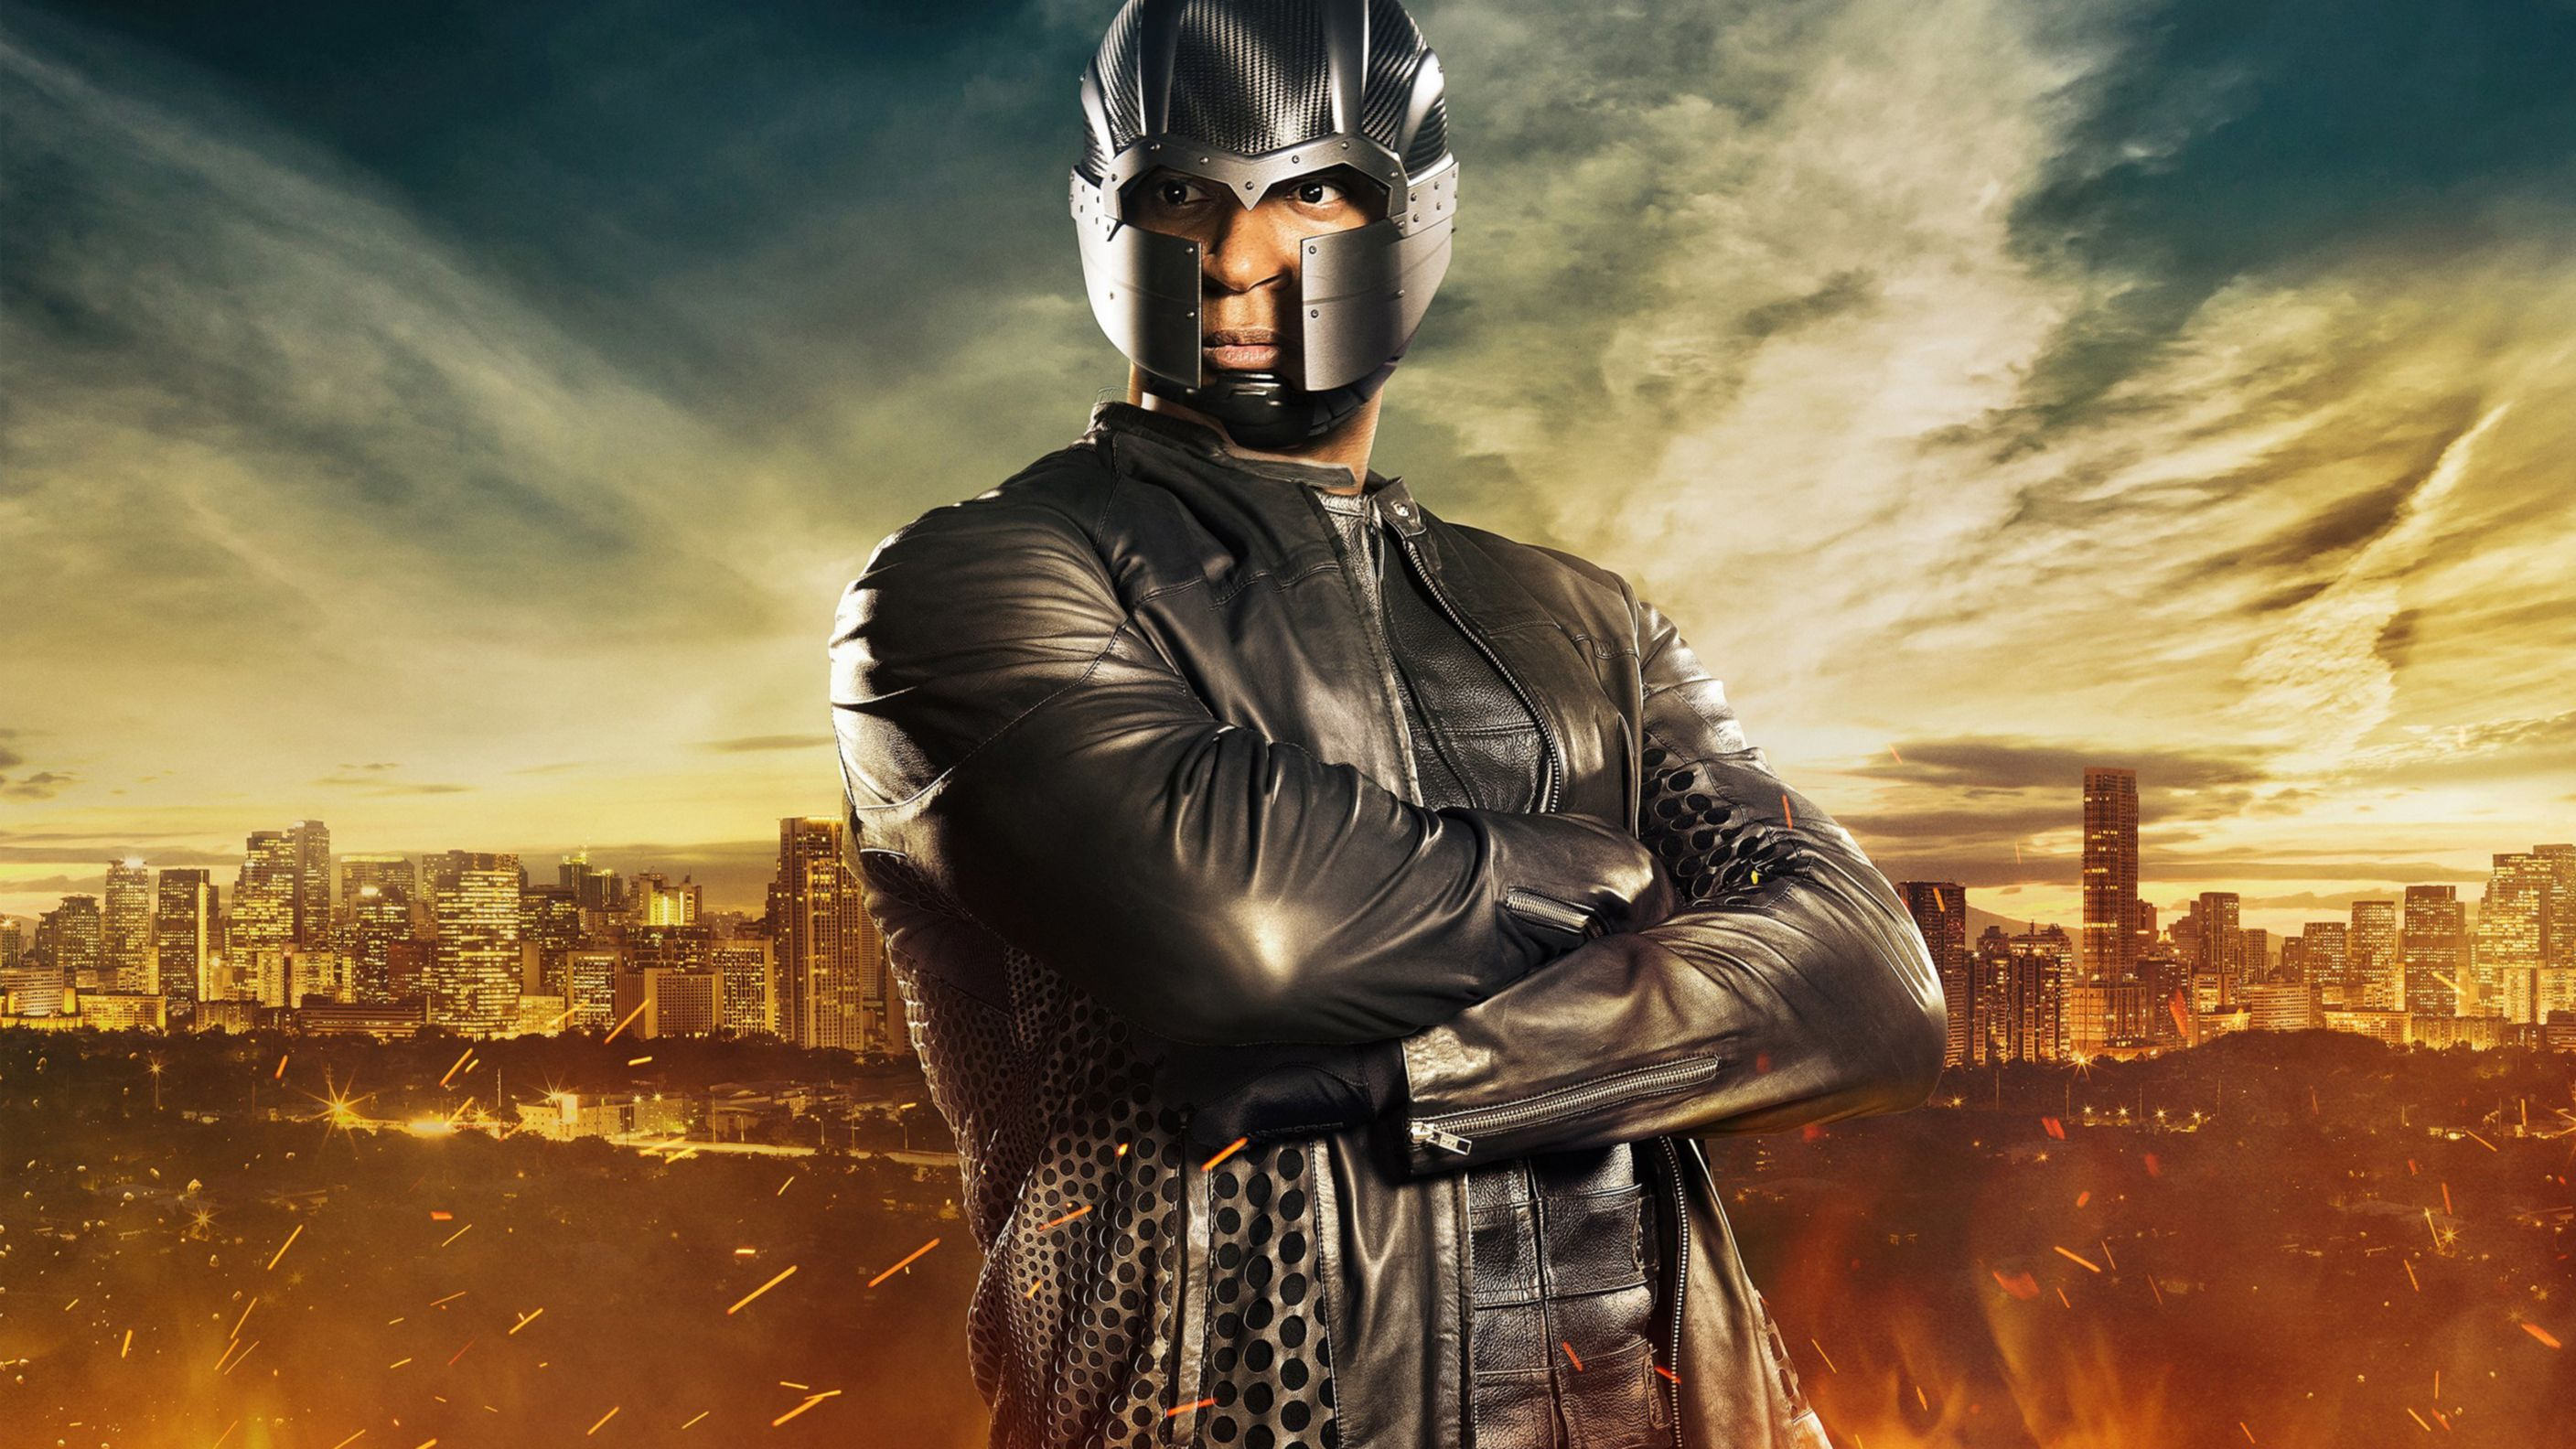 Download free HD John Diggle Arrow Season 4 HD Wallpaper, image